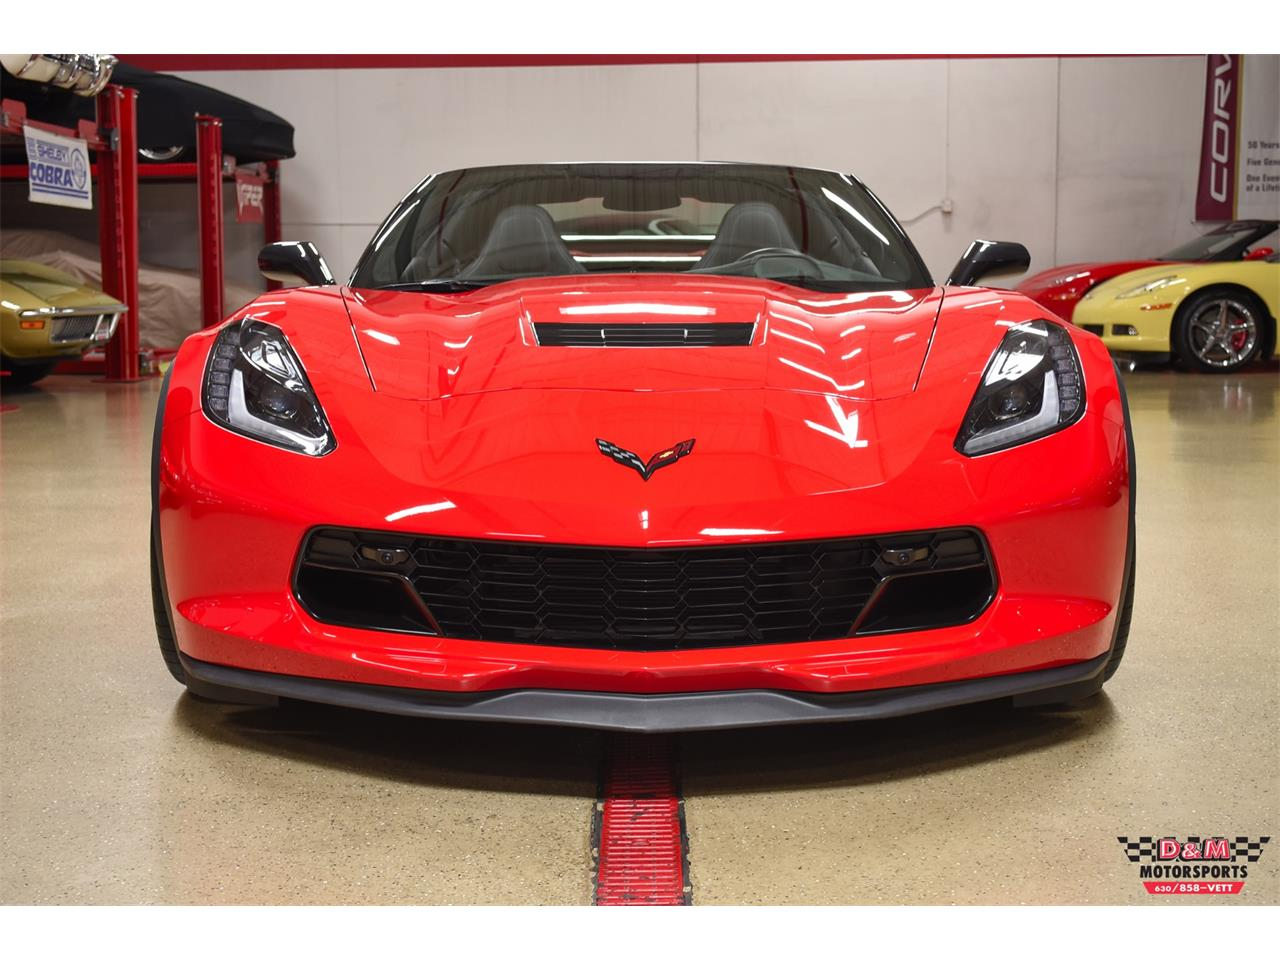 Large Picture of 2018 Corvette located in Glen Ellyn Illinois - $61,995.00 Offered by D & M Motorsports - PWM3